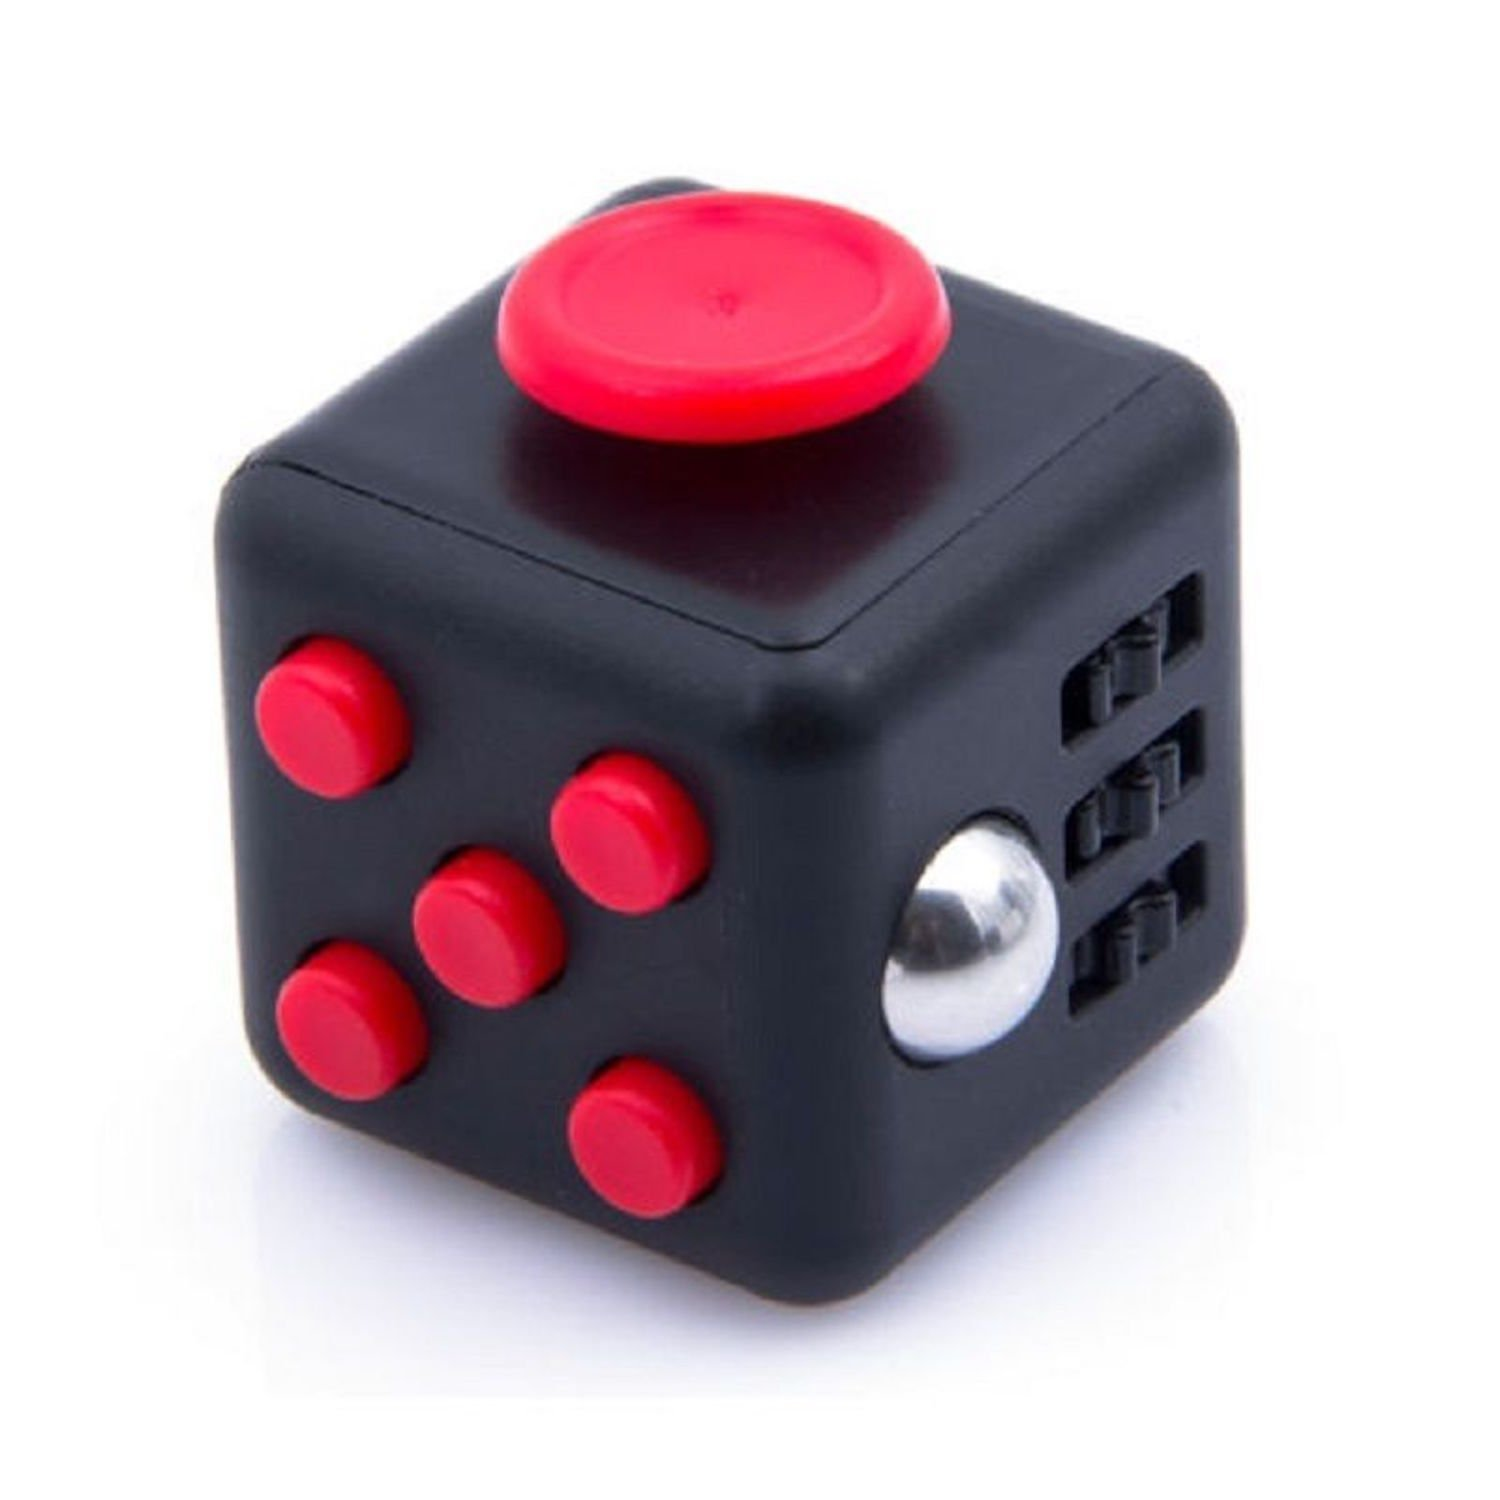 Xmas Gift Fidget Cube Relieves Stress Boredom and Anxiety Helps to Focus Christmas Gift for Children and Adults [ Arrives Before Christmas USA STOCK ] - Black Red